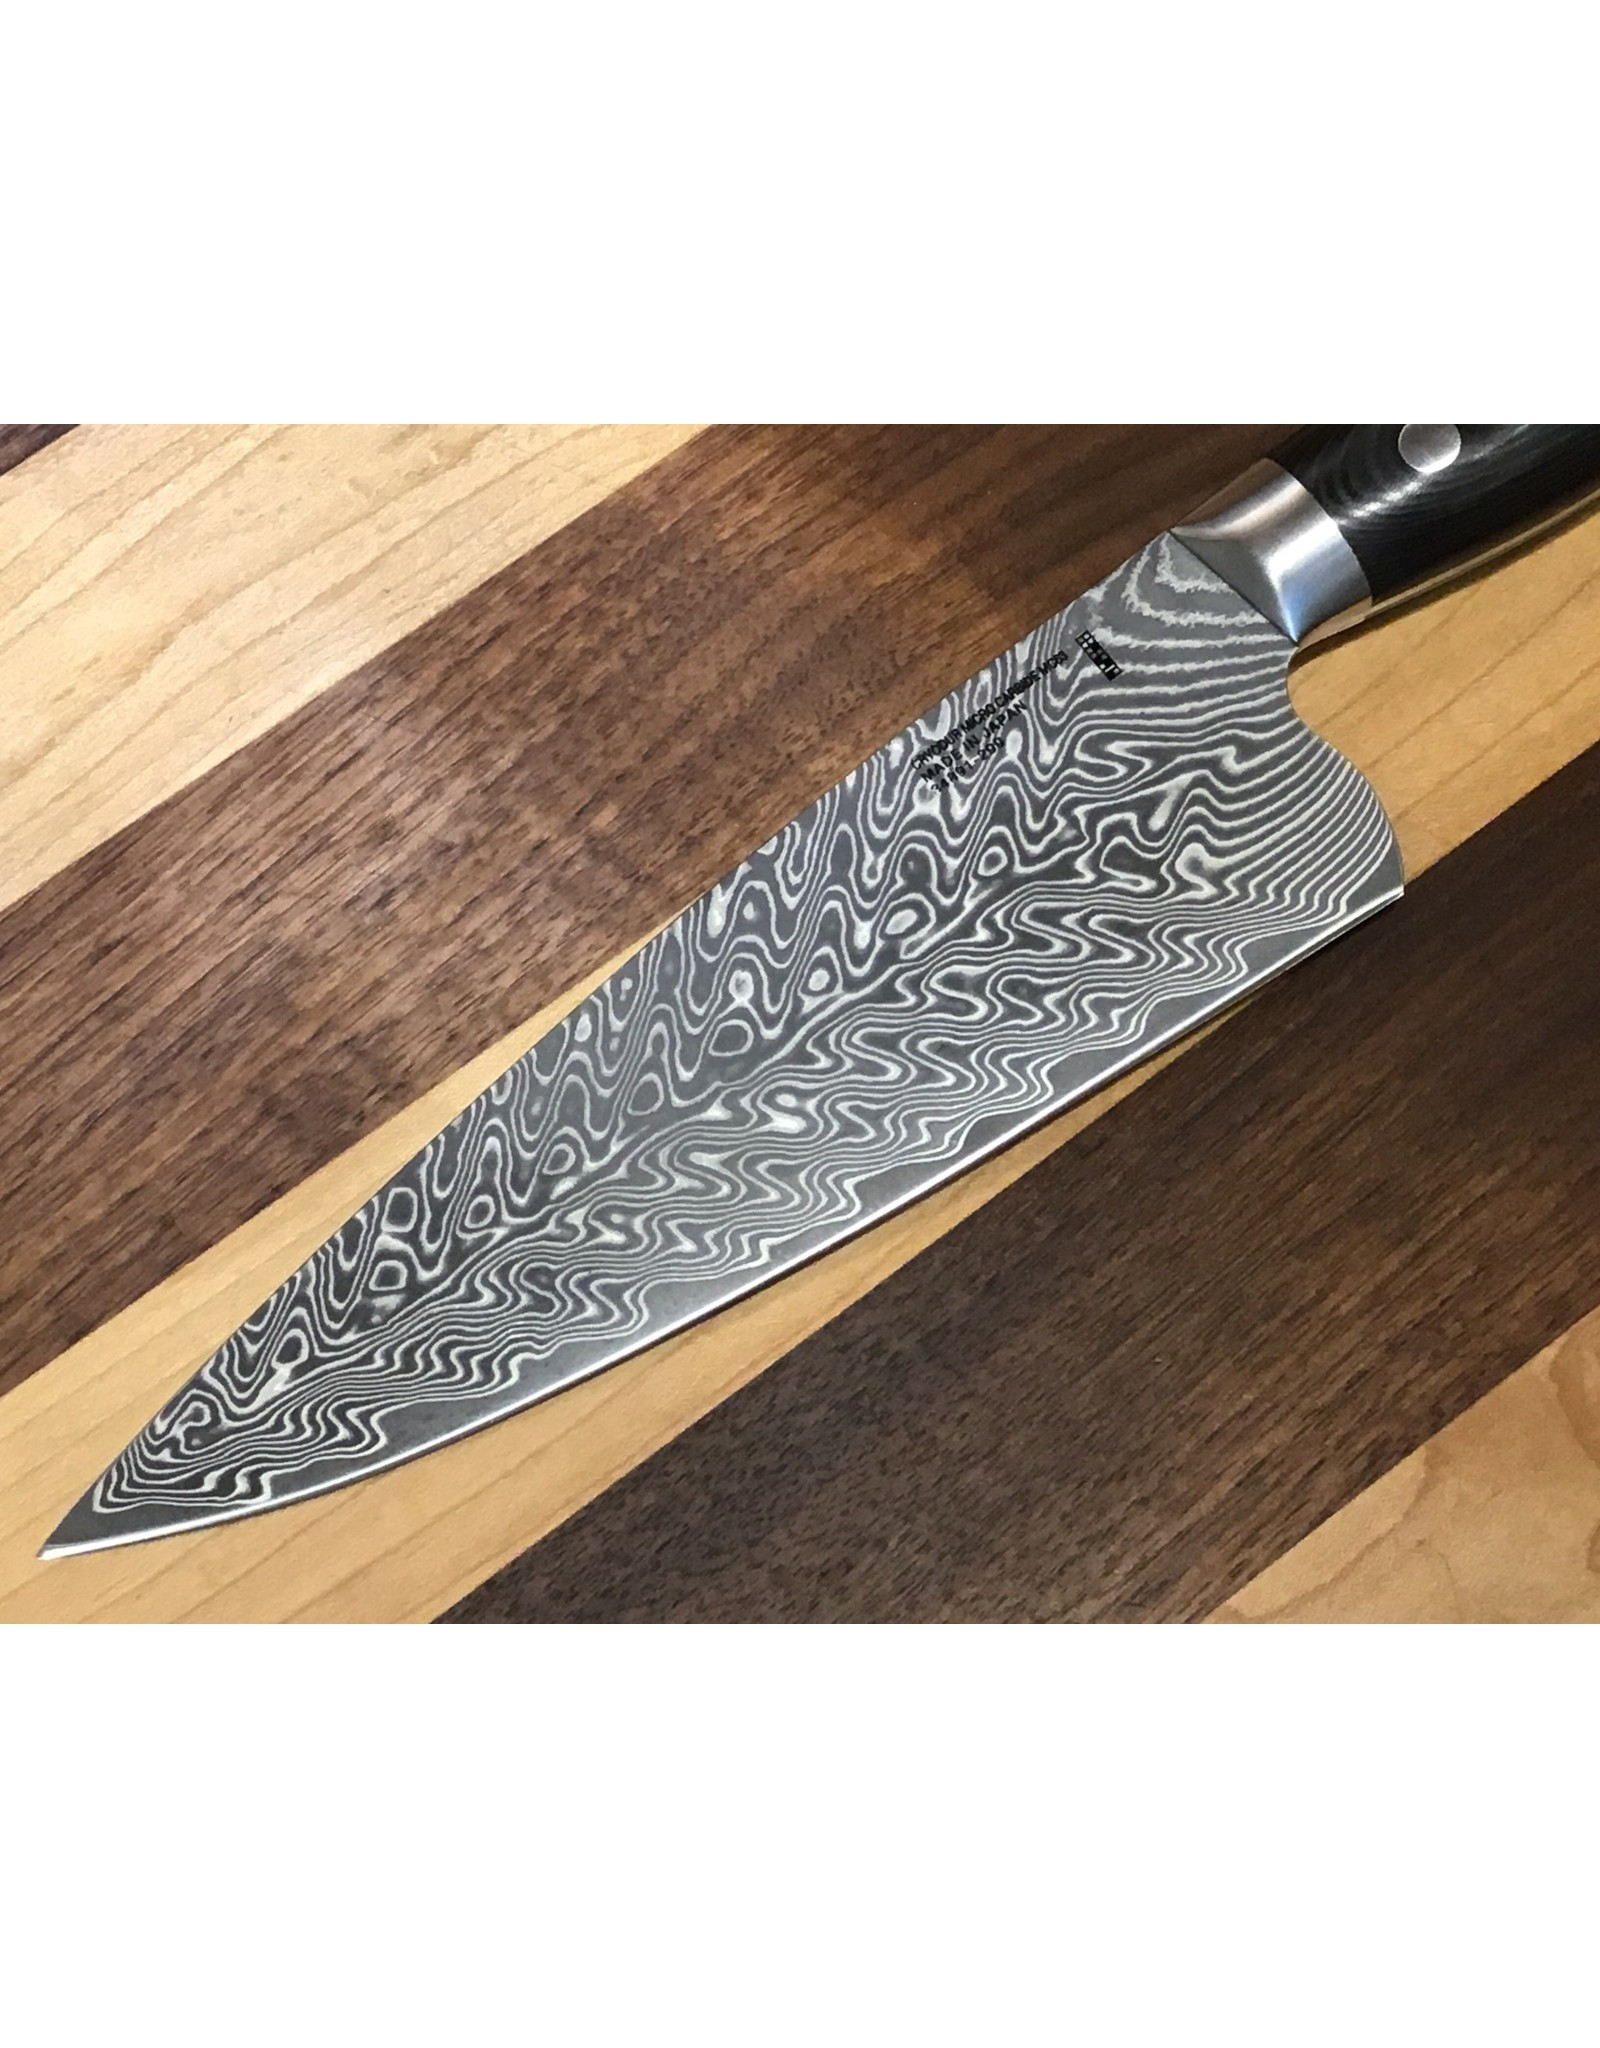 "Kramer by Zwilling Kramer 8"" Chef knife Euroline Stainless Damascus"